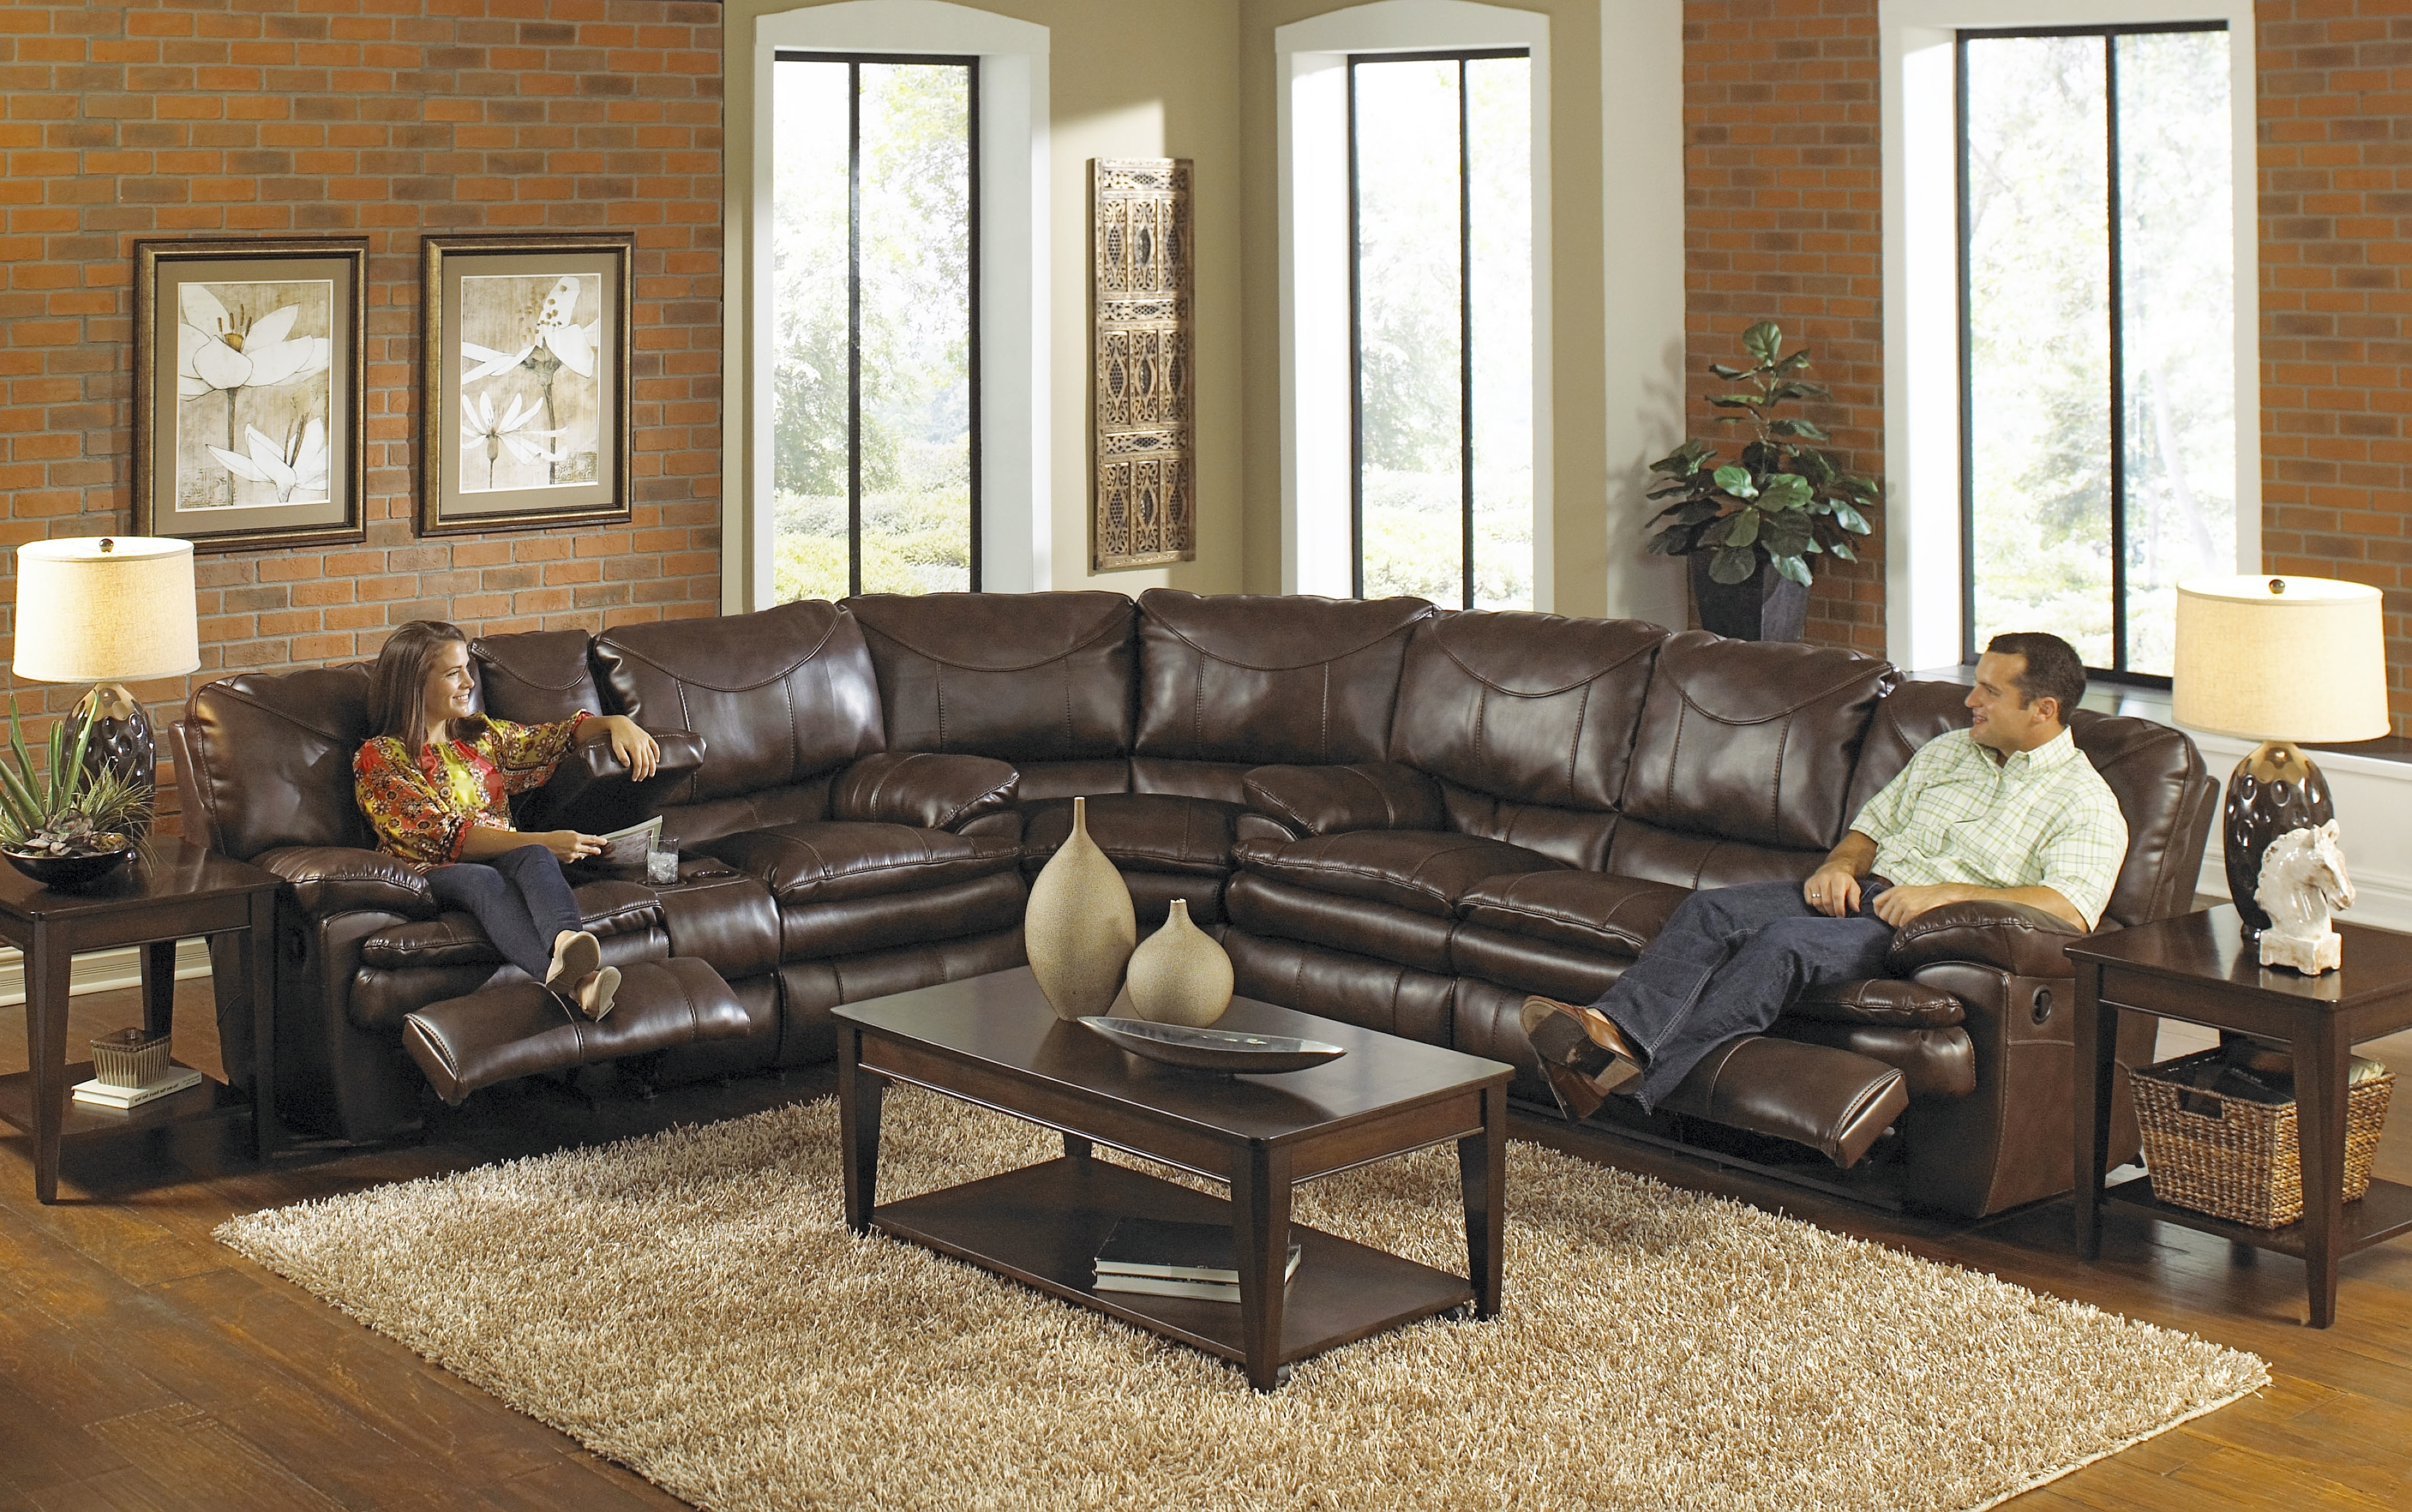 Large Sectional Sofas For Well Known Buy Large Sectional Sofas Perfect For Your Large Living Room (View 4 of 15)